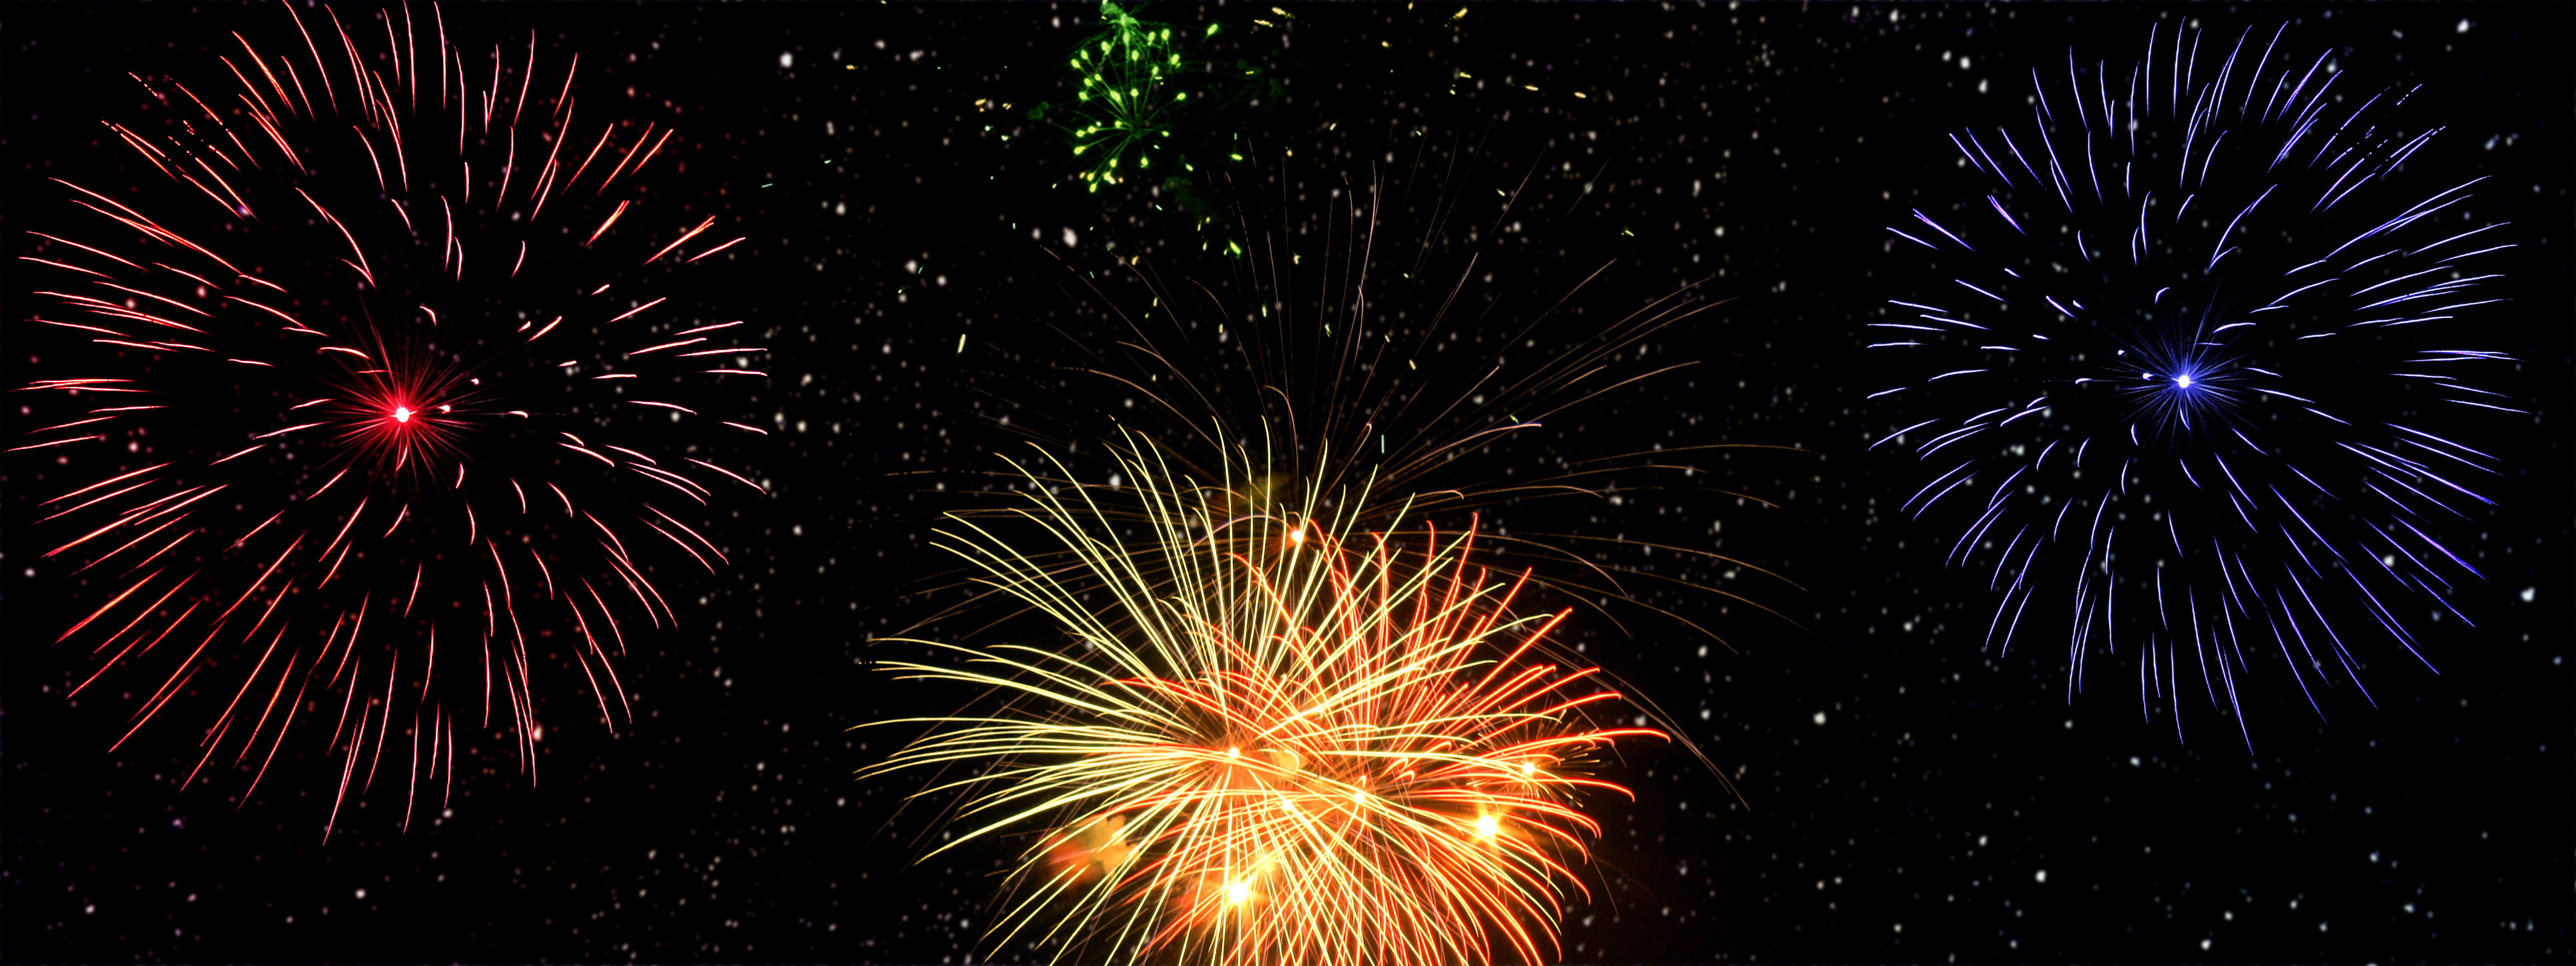 New Year New Years Eve Fireworks Banner Starry Sky Rockets 1460271 Pxhere Com Popup Painting